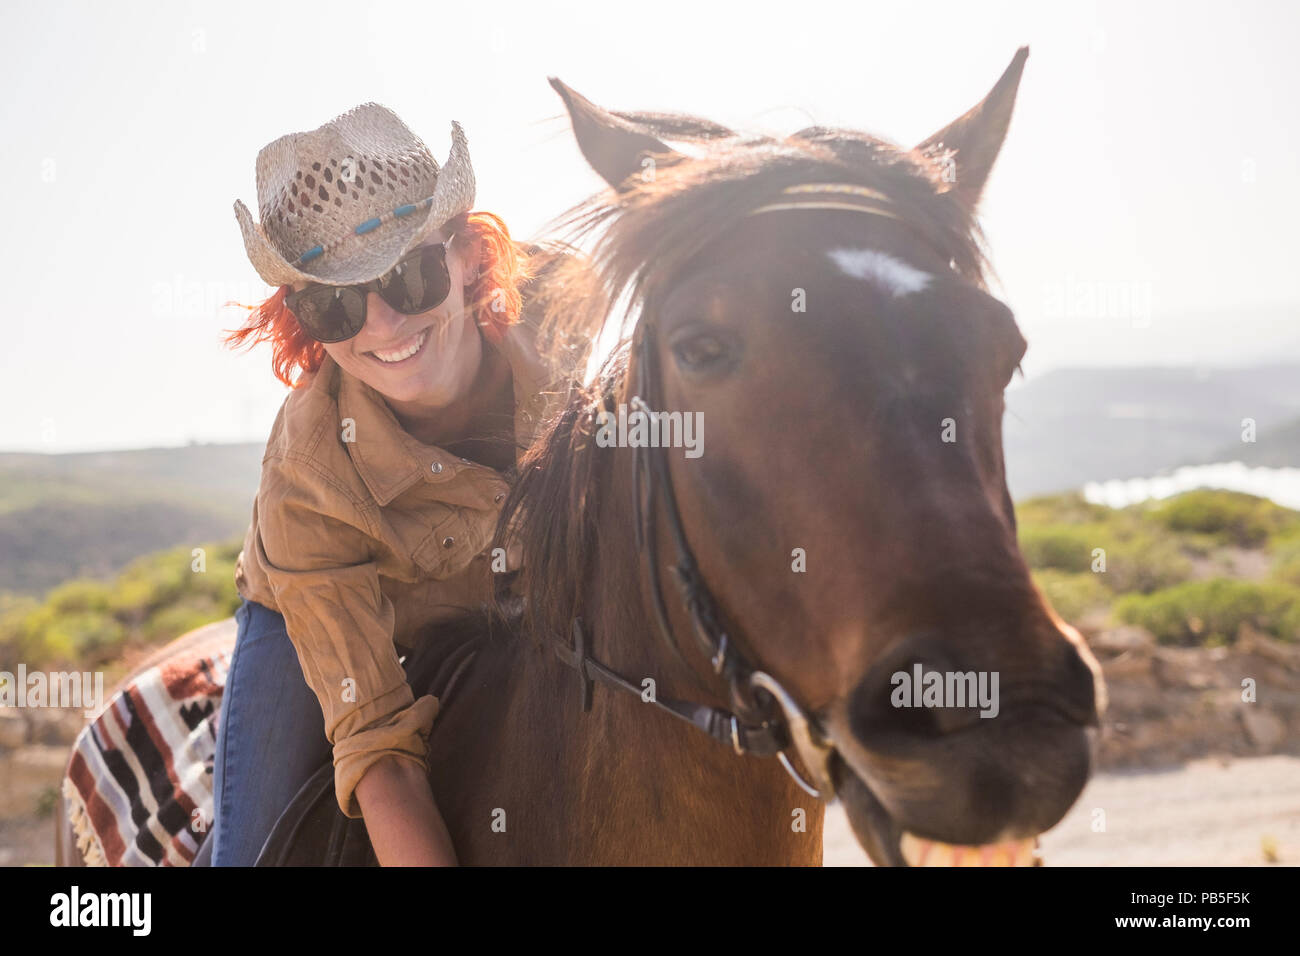 beautiful cheerful young woman enjoy and ride her brown cute horse in friendship and relationship. animal lover and pet therapy concept. travel and va - Stock Image